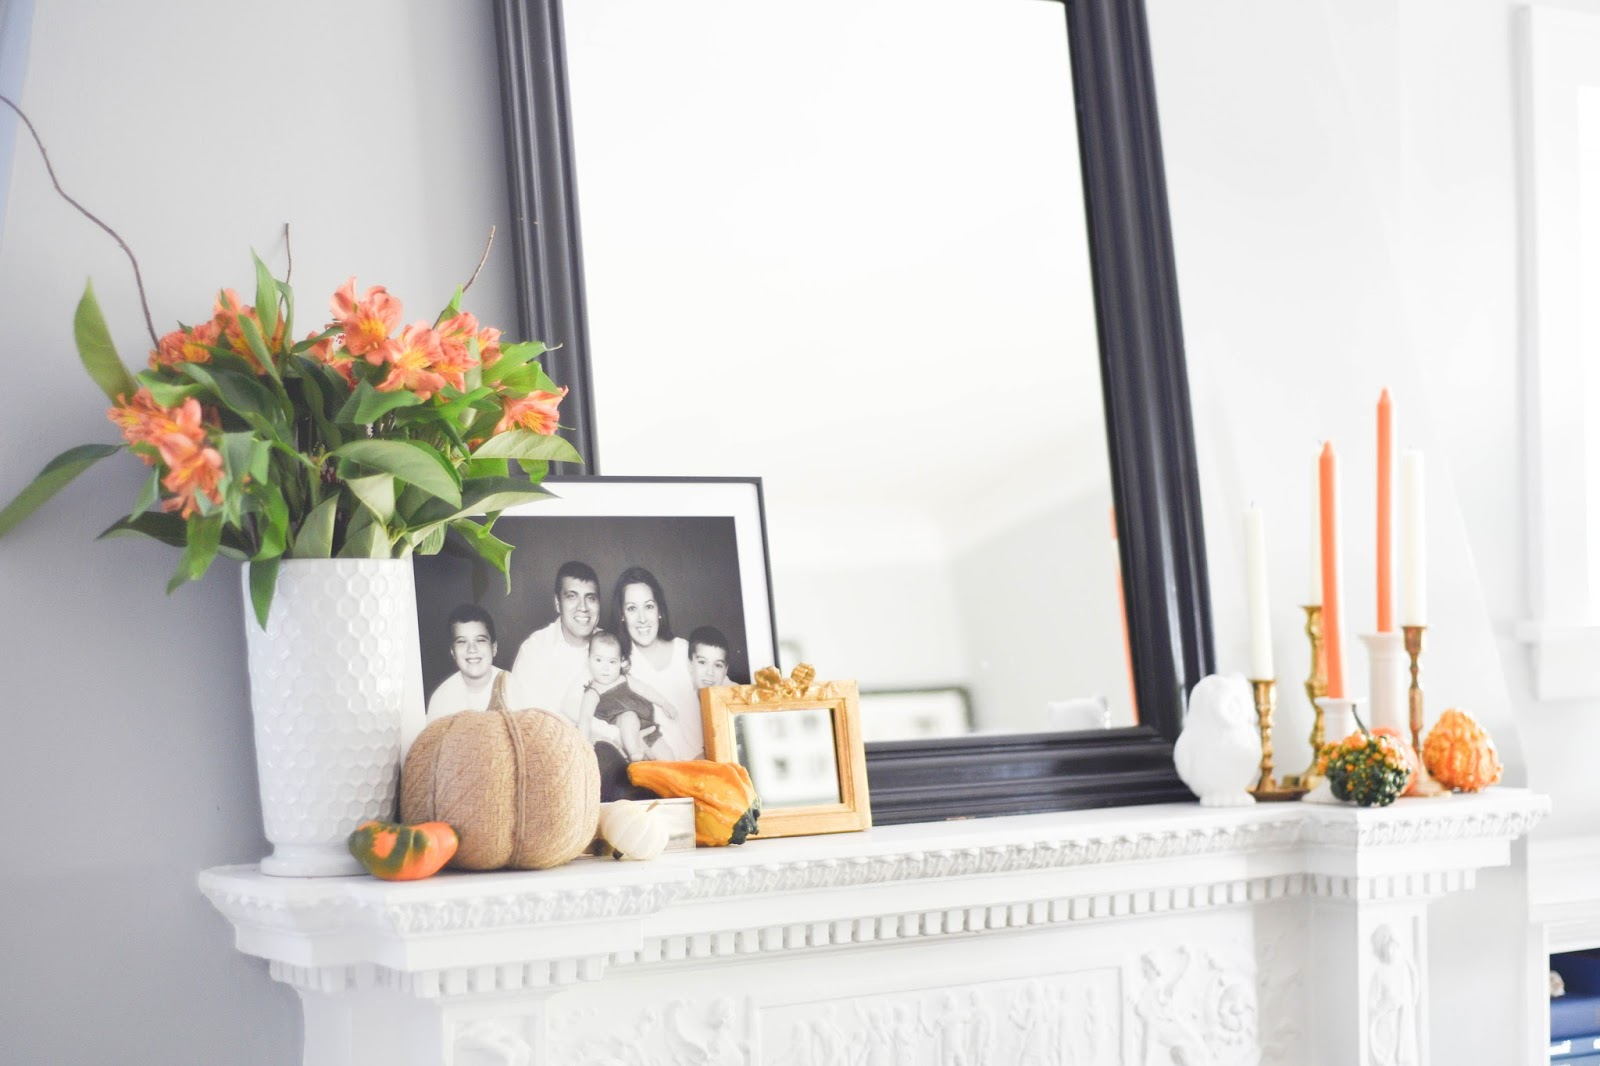 Easy ways to style your coffee table for Fall. Coffee Table Styling #falldecor #coffeetablestyling #homefalltour www.homewithkeki.com